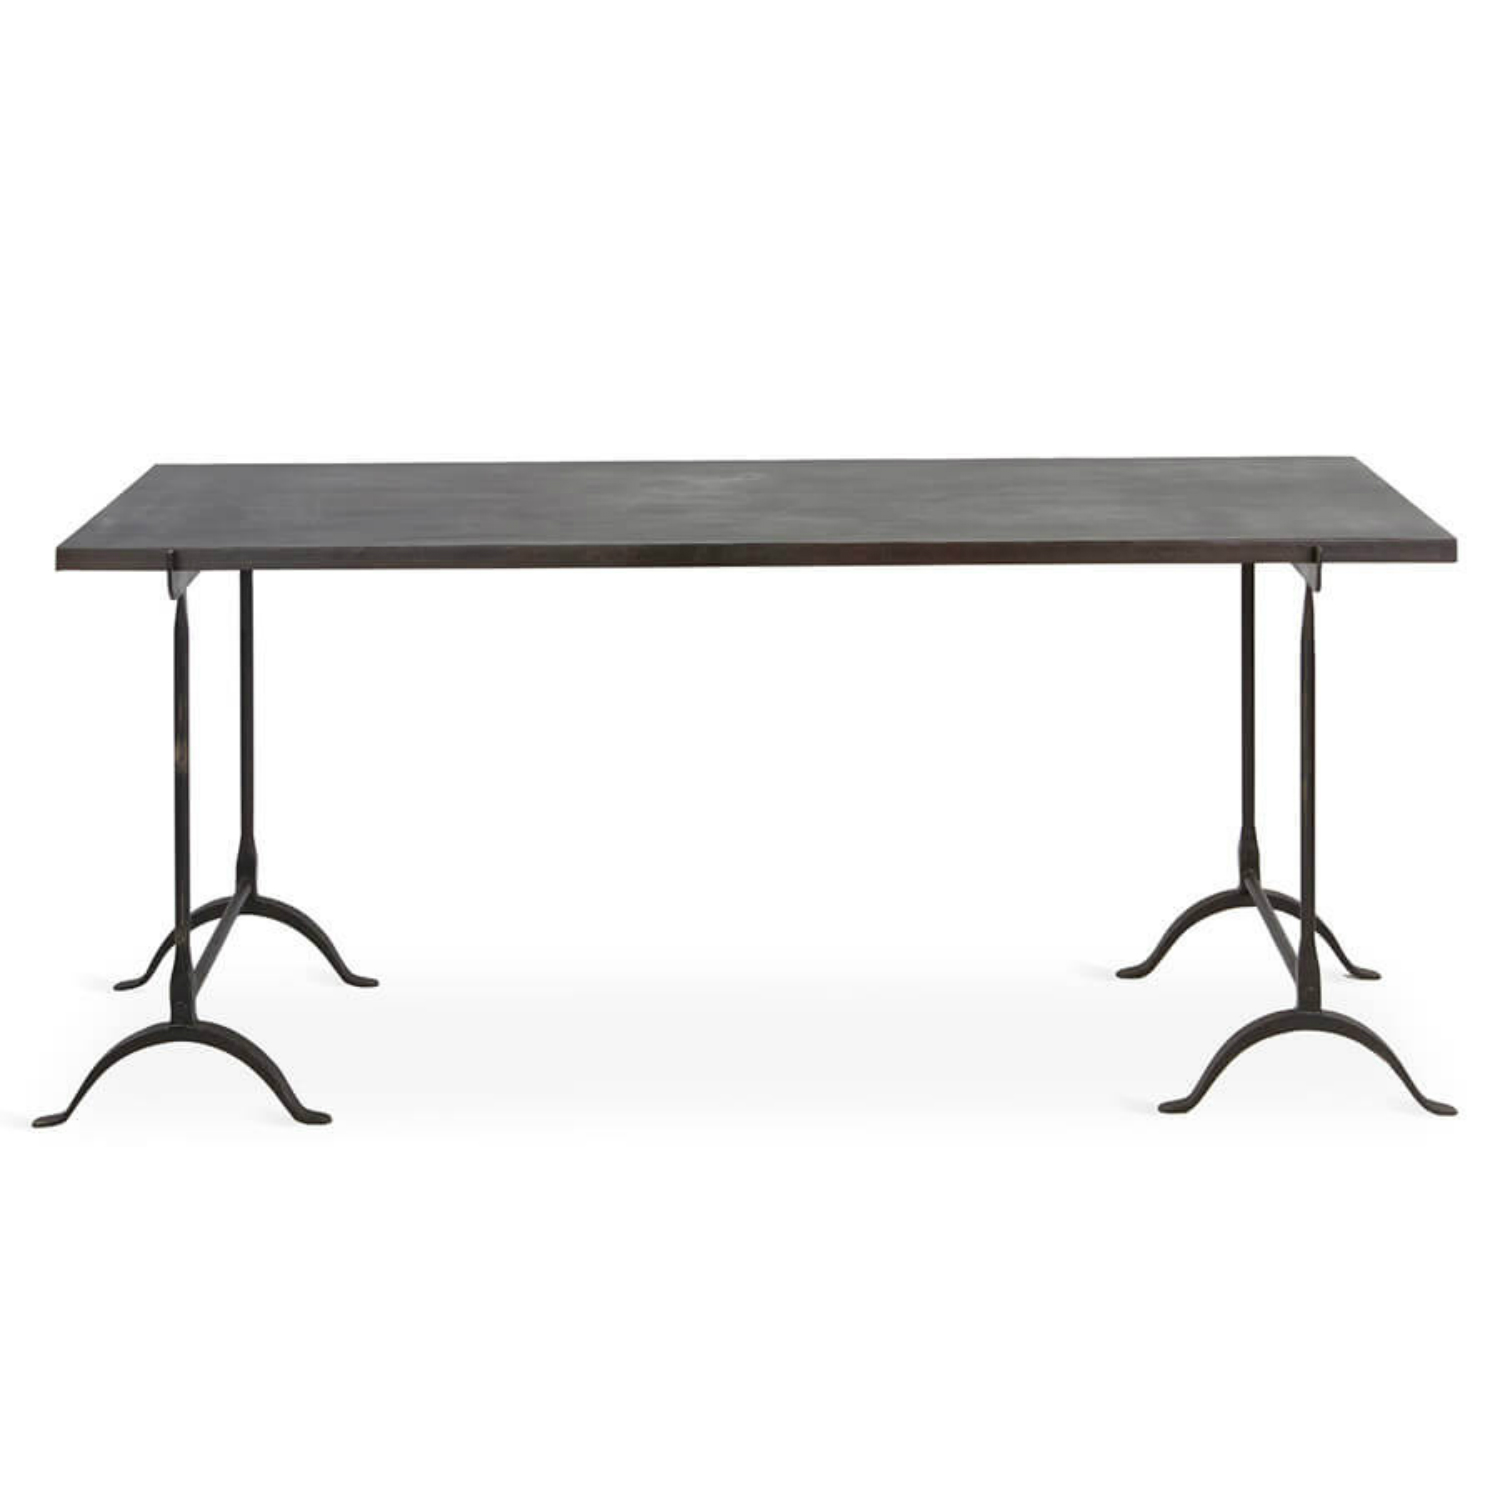 Ascalon Industrial Loft Iron Rust Recycled Rubber Dining Table